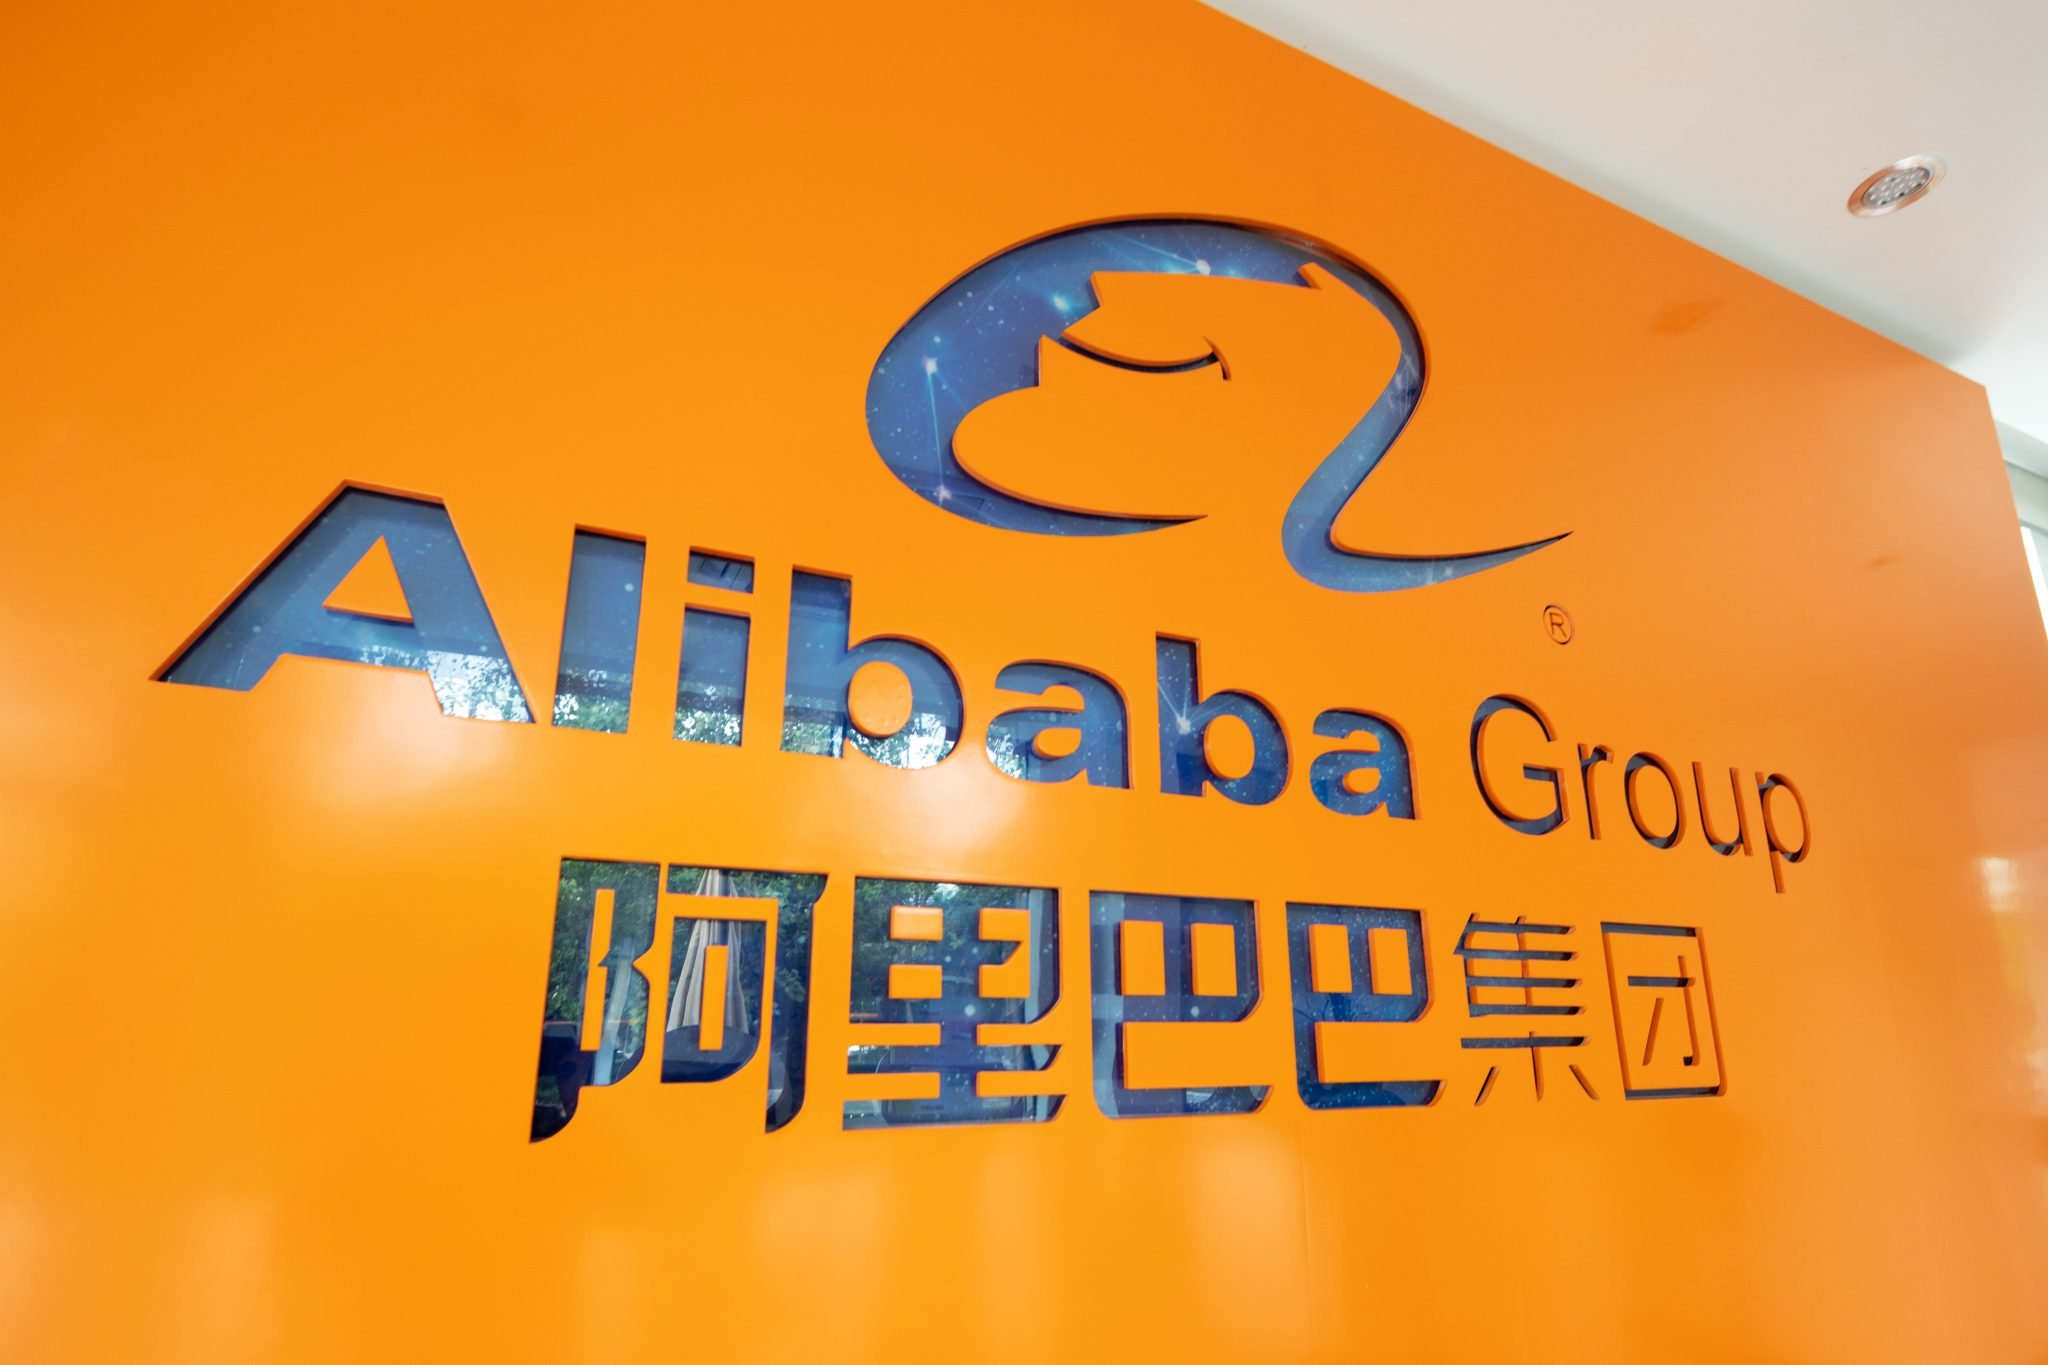 Hangzhou, China - September 10th, 2018: Alibaba Group location in Hangzhou, Zhejiang. Alibaba Group Holding Limited is a Chinese e-commerce company founded in 1999 by Jack Ma. It serves worldwide.